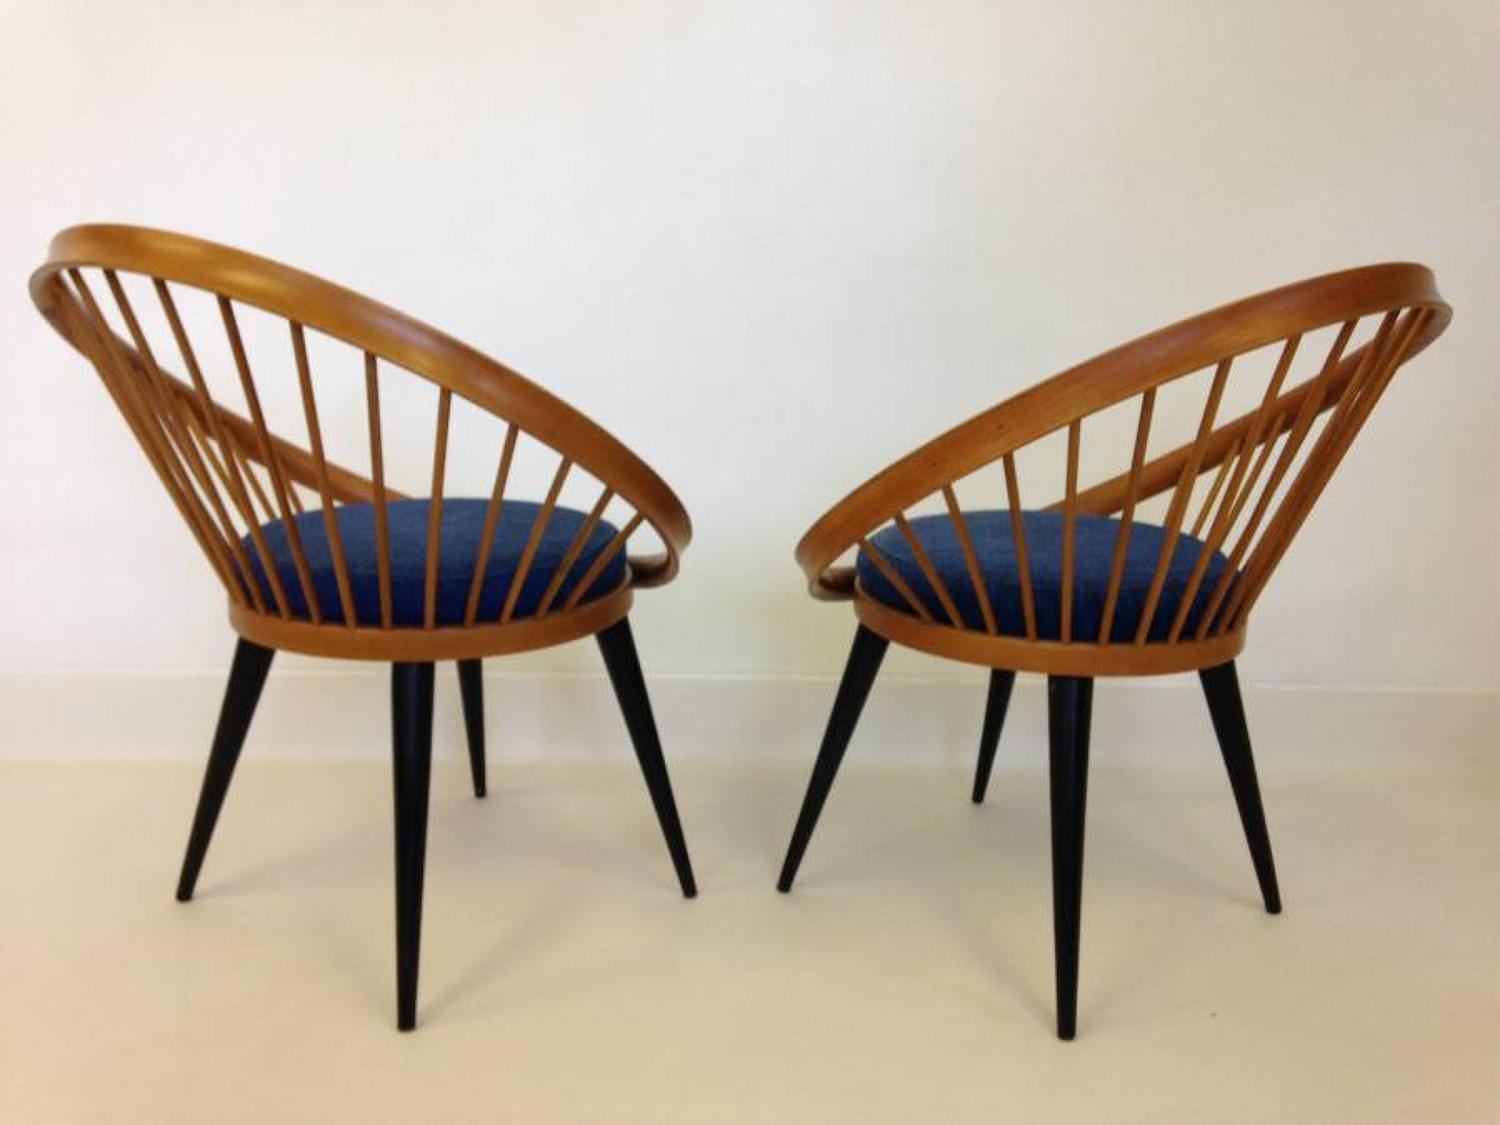 A pair of circle chairs by Yngve Ekstrom